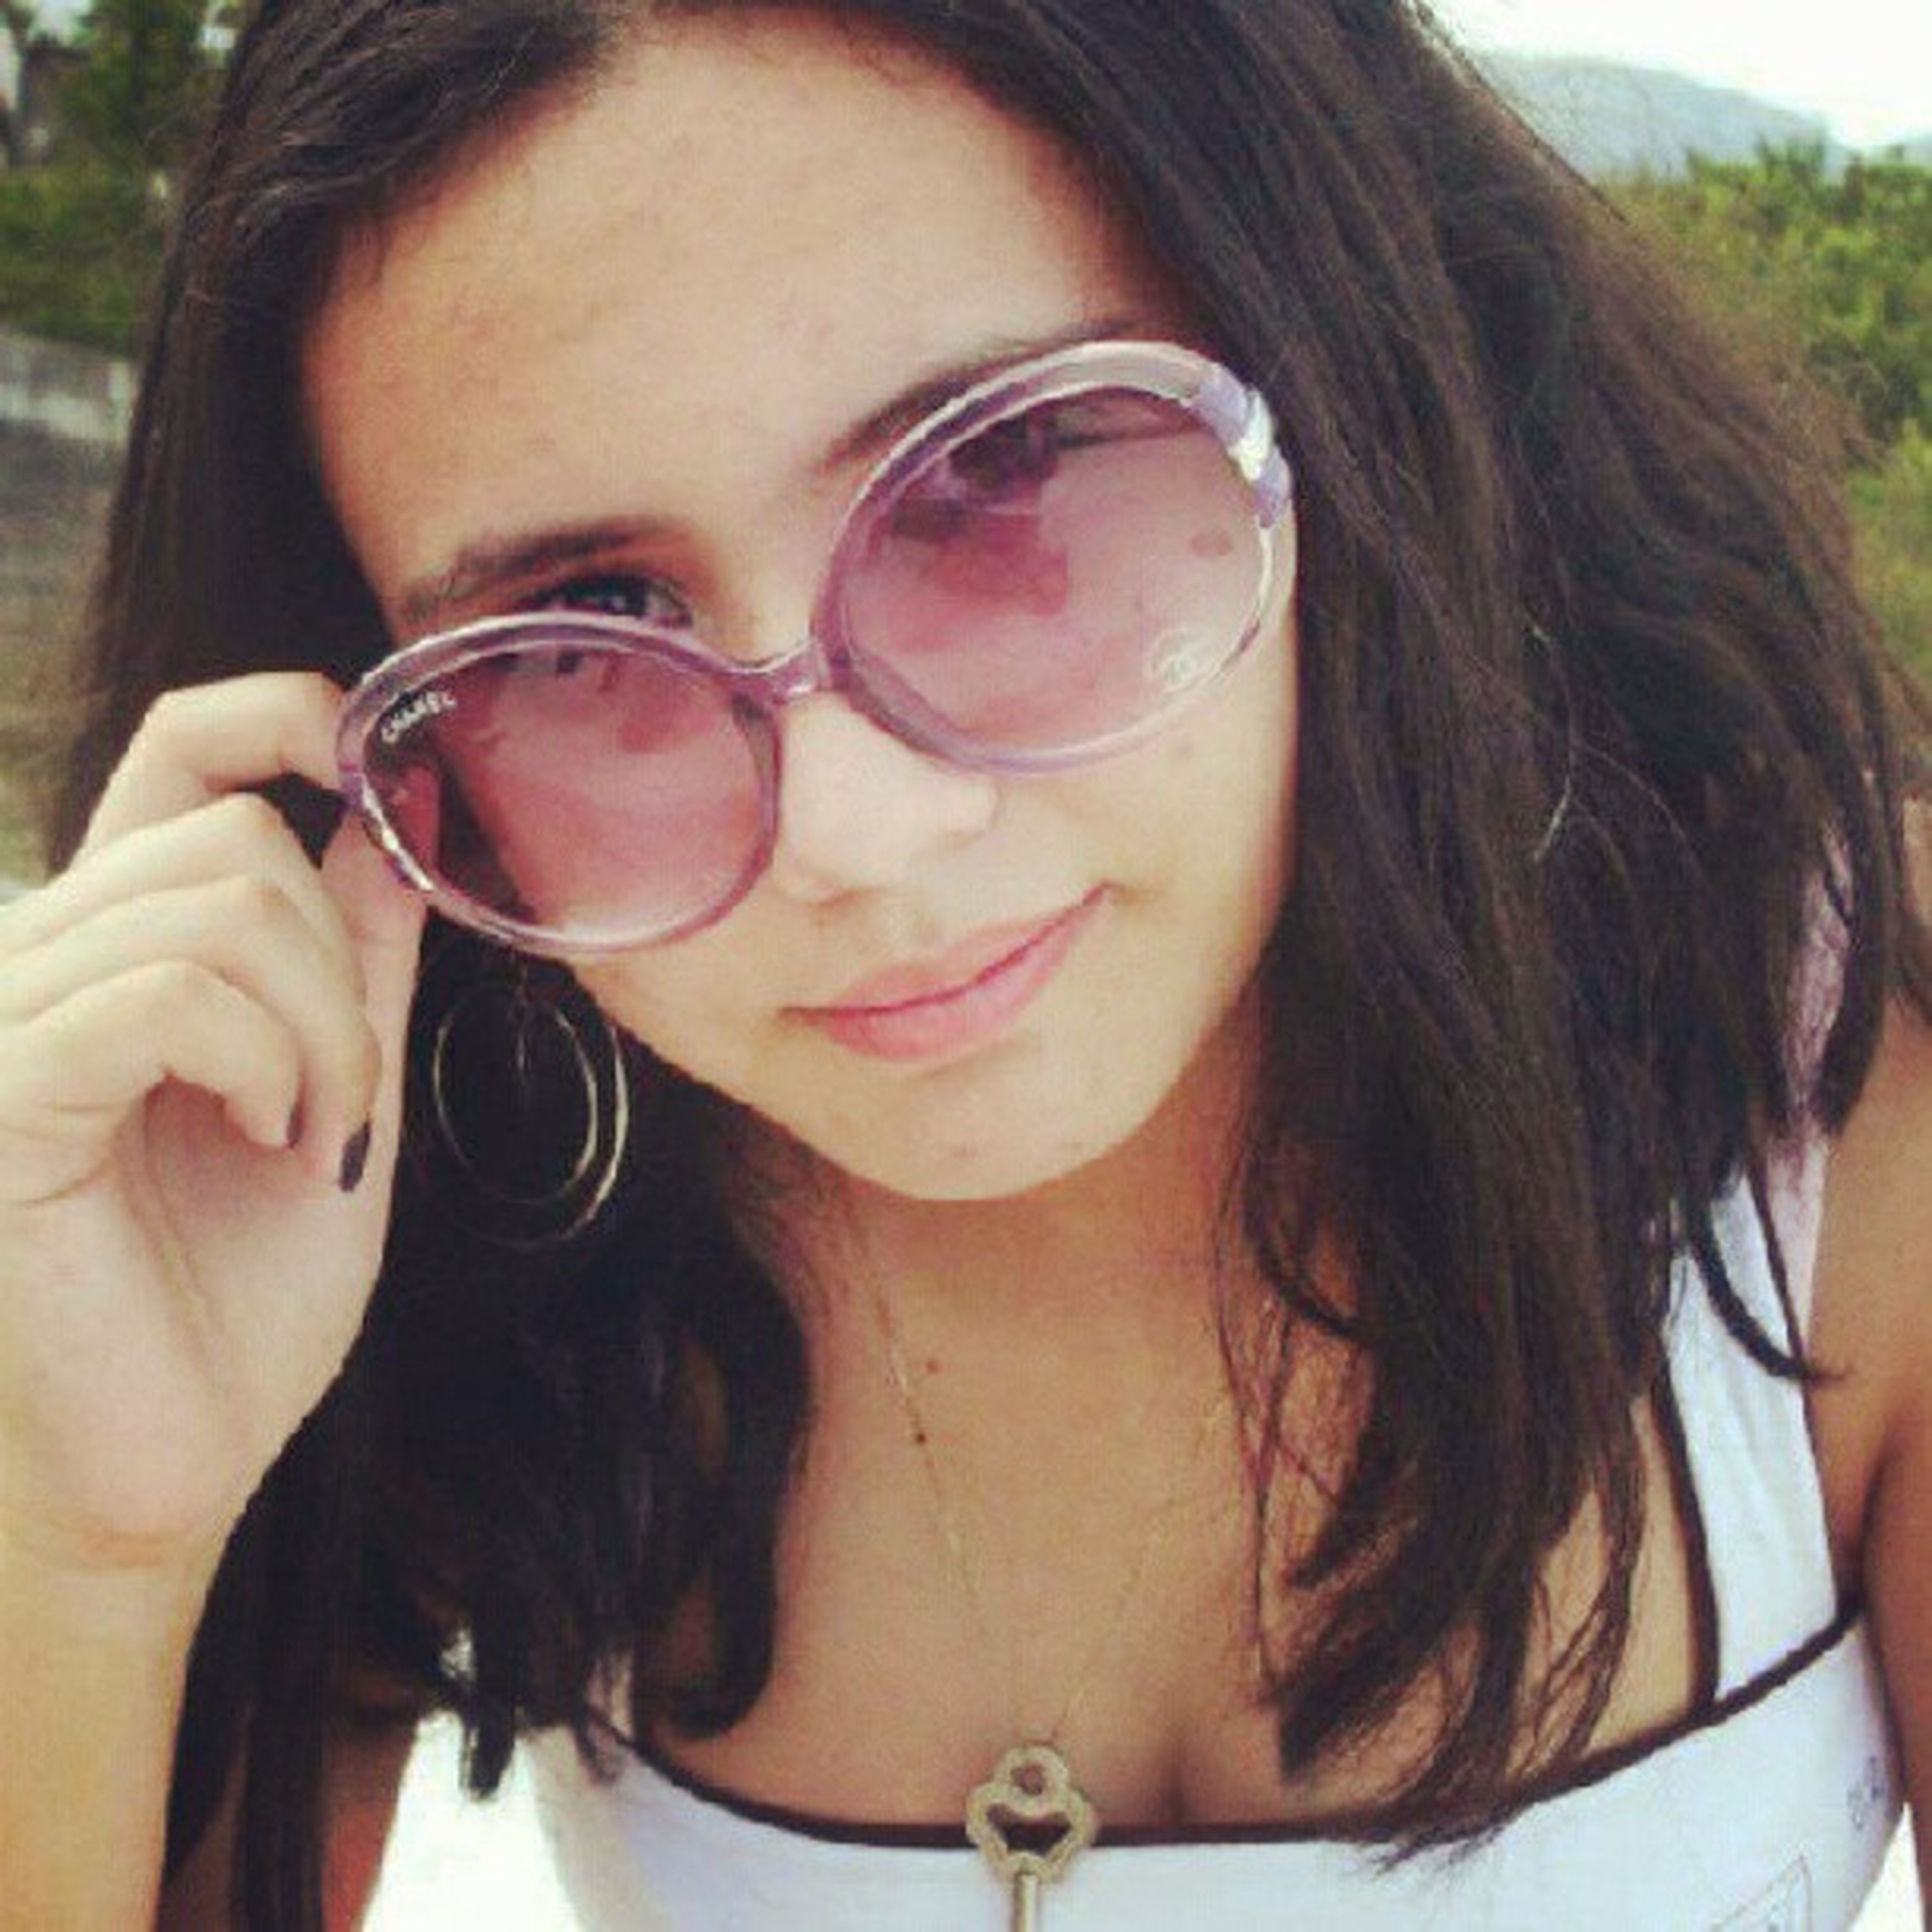 young adult, young women, portrait, headshot, person, looking at camera, lifestyles, sunglasses, leisure activity, long hair, front view, close-up, smiling, head and shoulders, focus on foreground, sunlight, brown hair